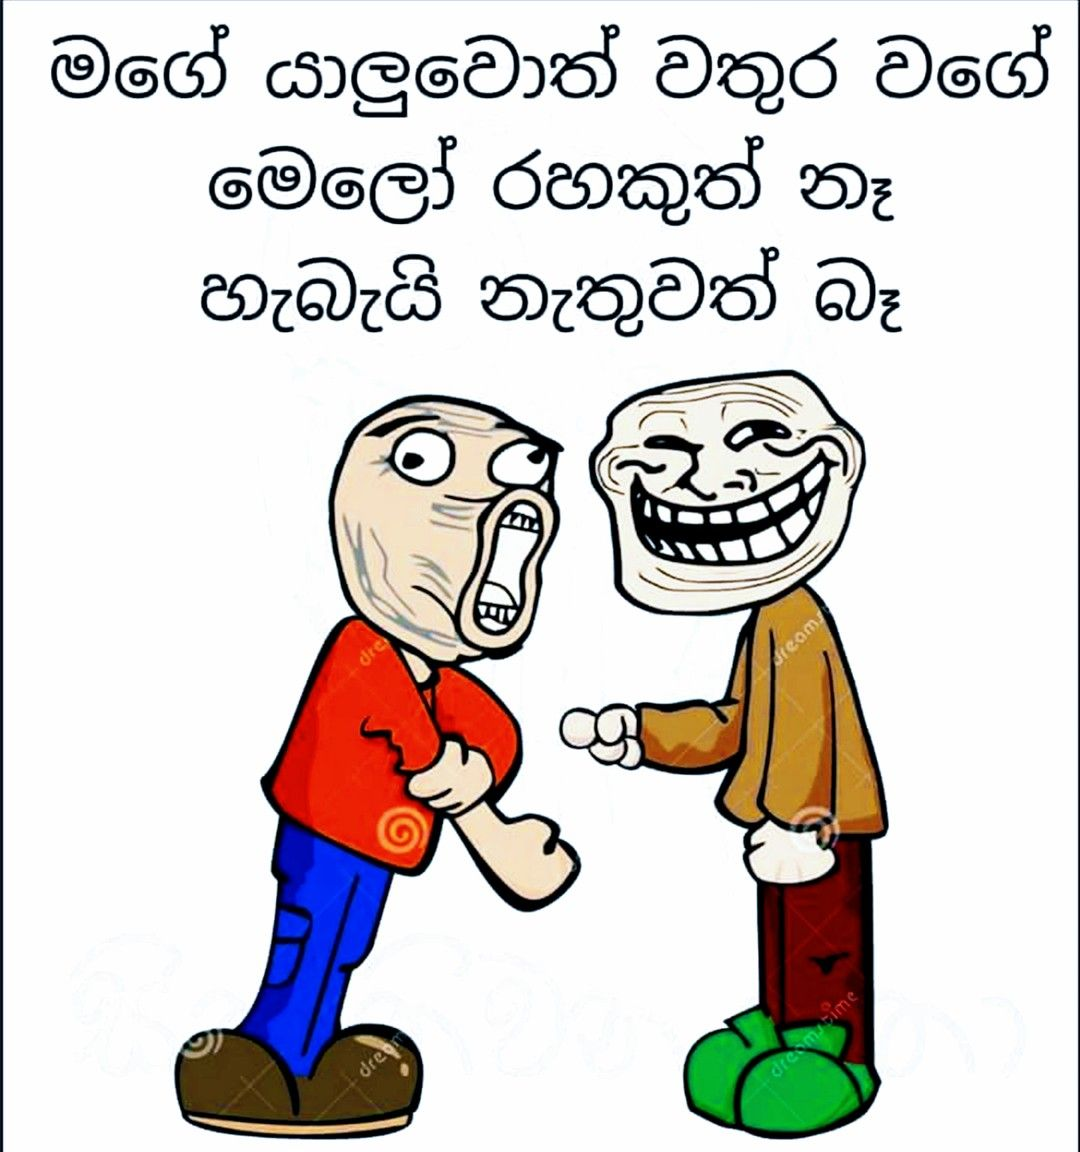 Pin By Sandaya Sepali On Lankan Memes Friendship Quotes Funny Jokes Quotes Funny Quotes